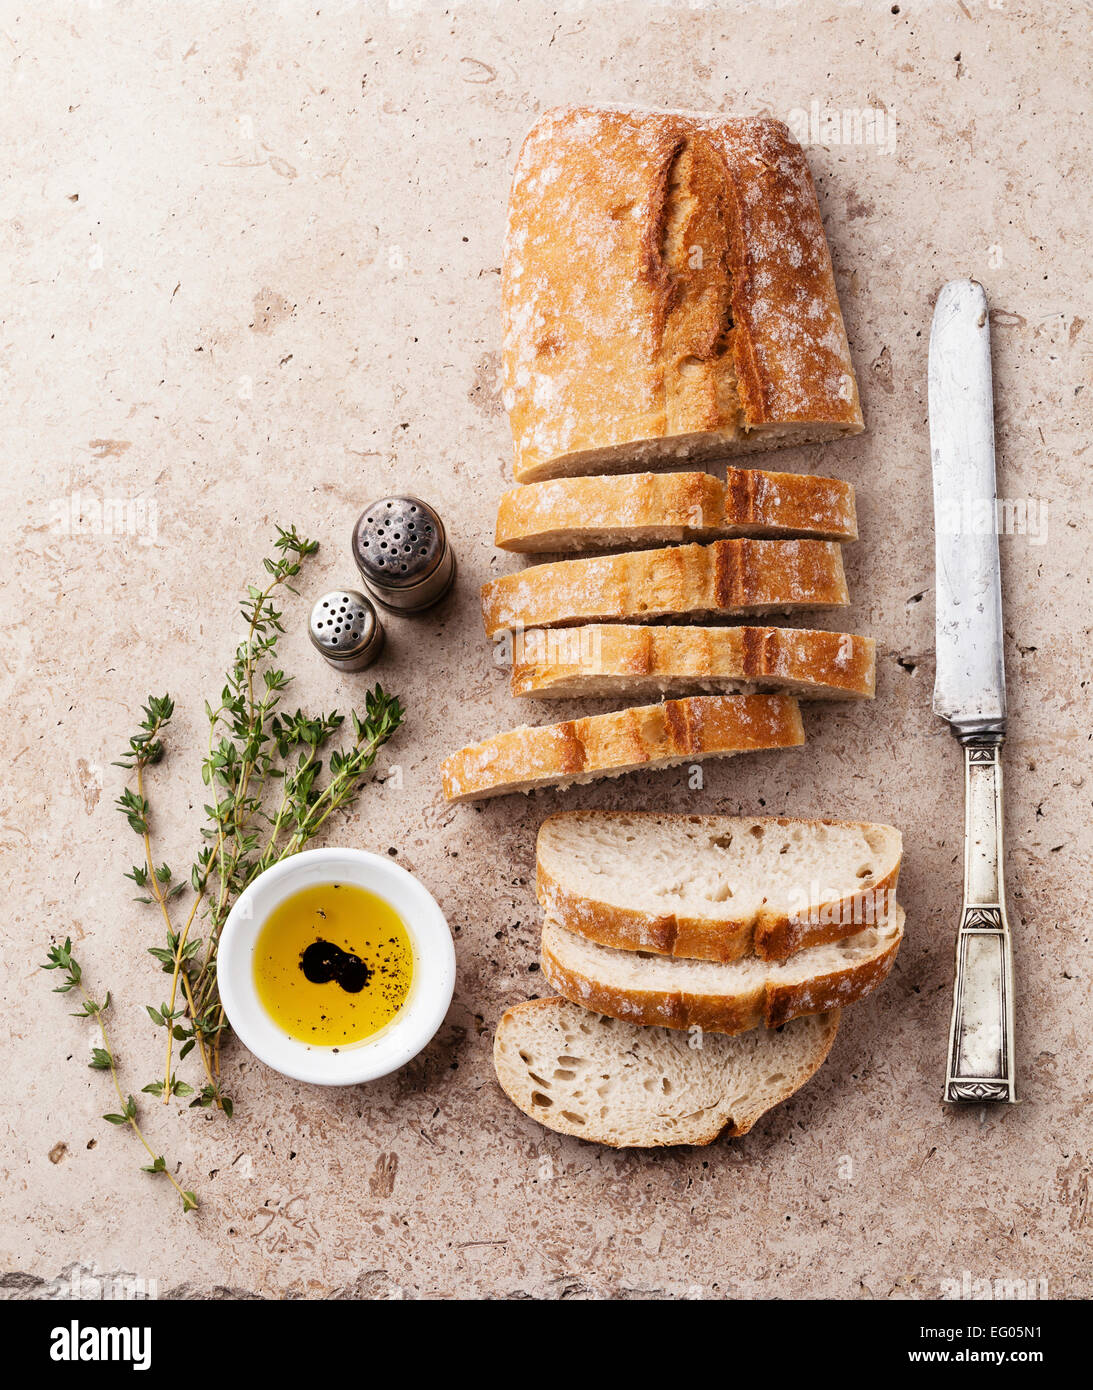 Fresh ciabatta with olive oil and thyme - Stock Image